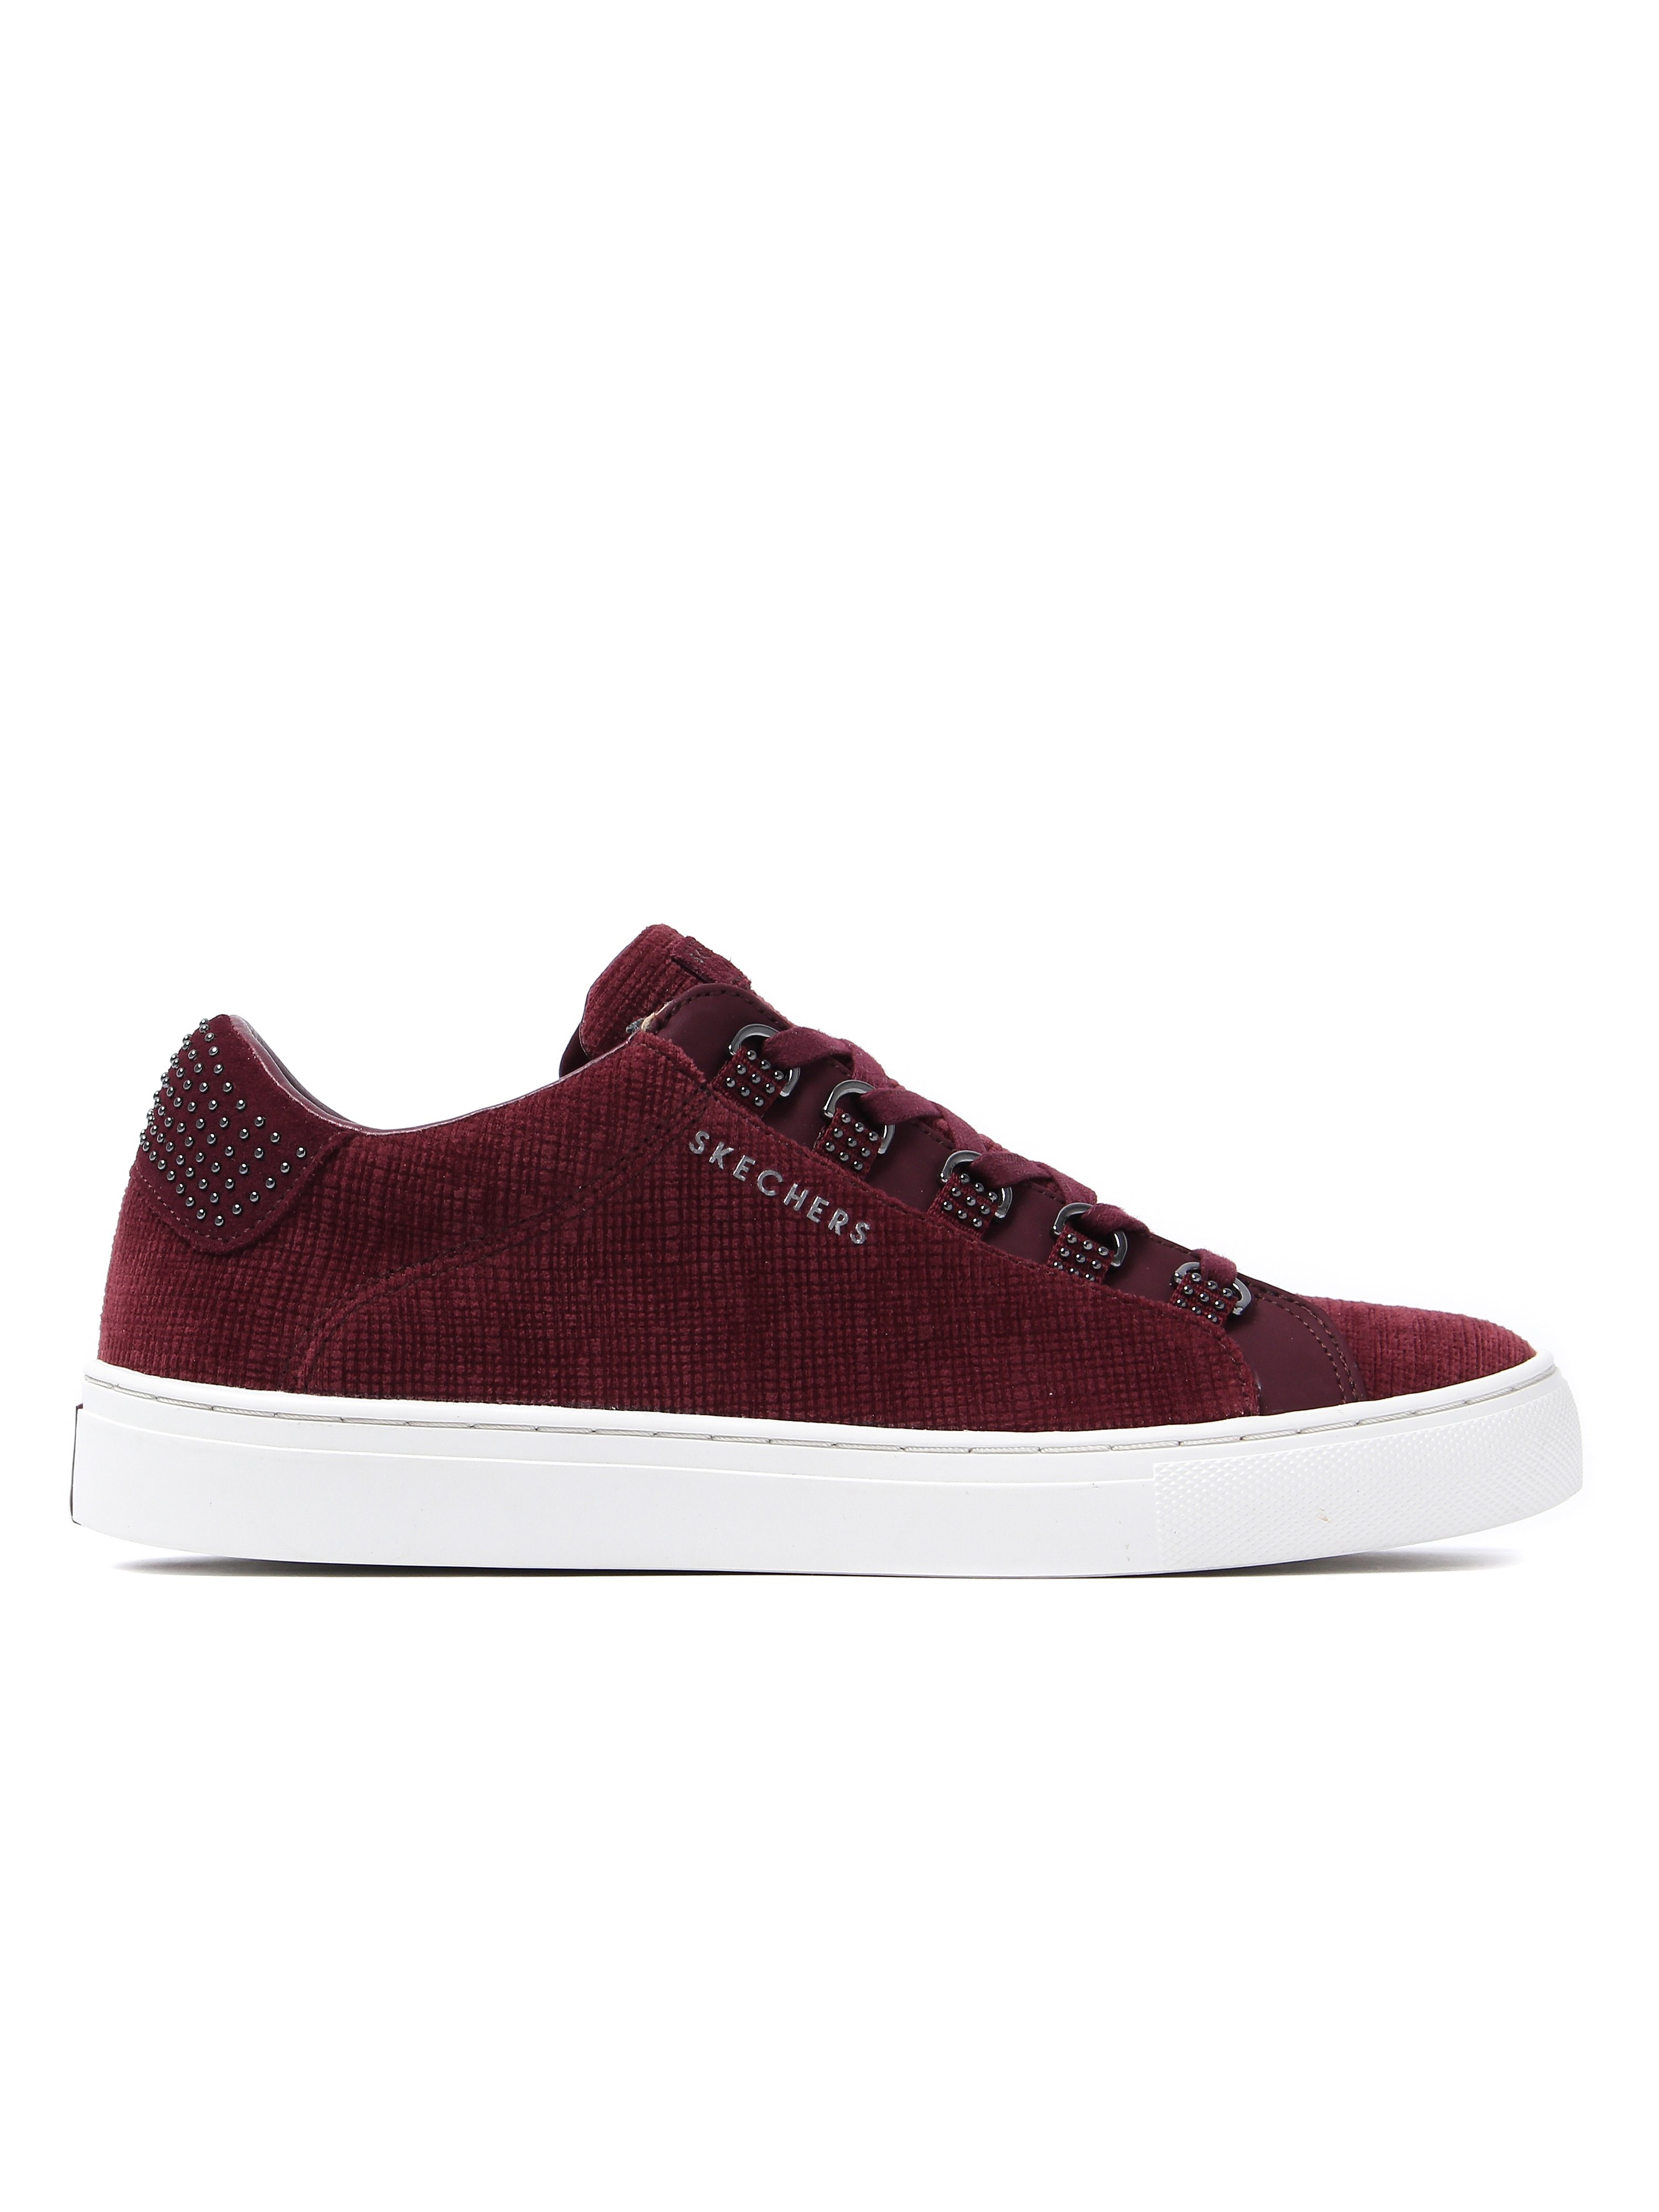 Skechers Women's Side Street Kickbacks Trainers - Burgundy Velvet